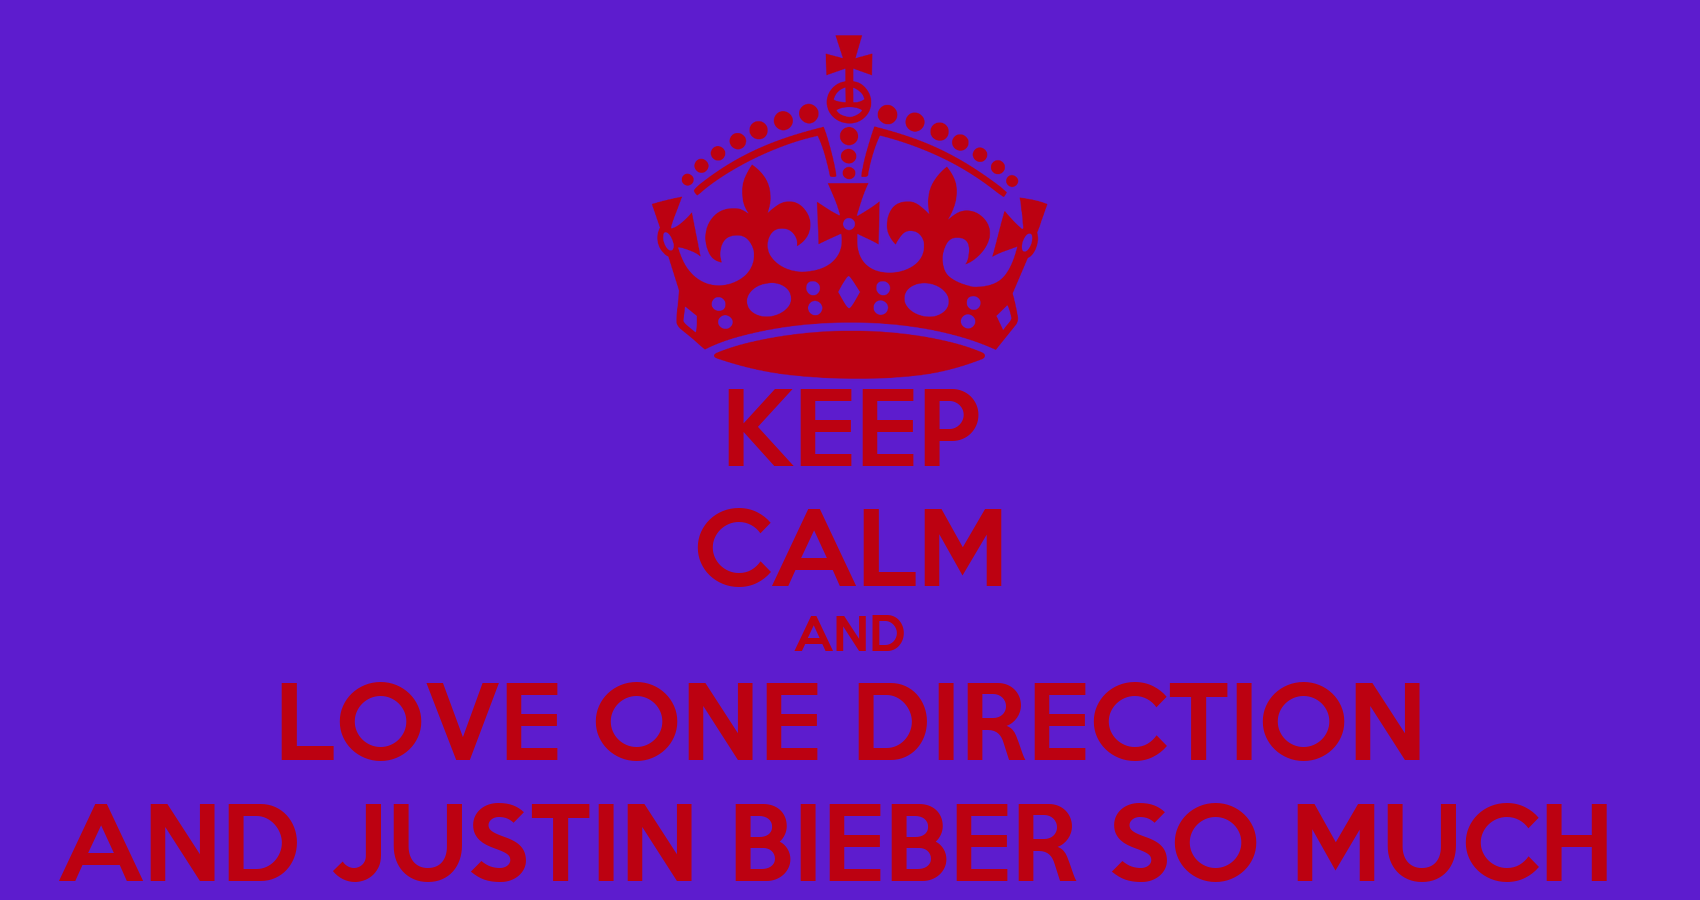 KEEP CALM AND LOVE ONE DIRECTION JUSTIN BIEBER SO MUCH Poster